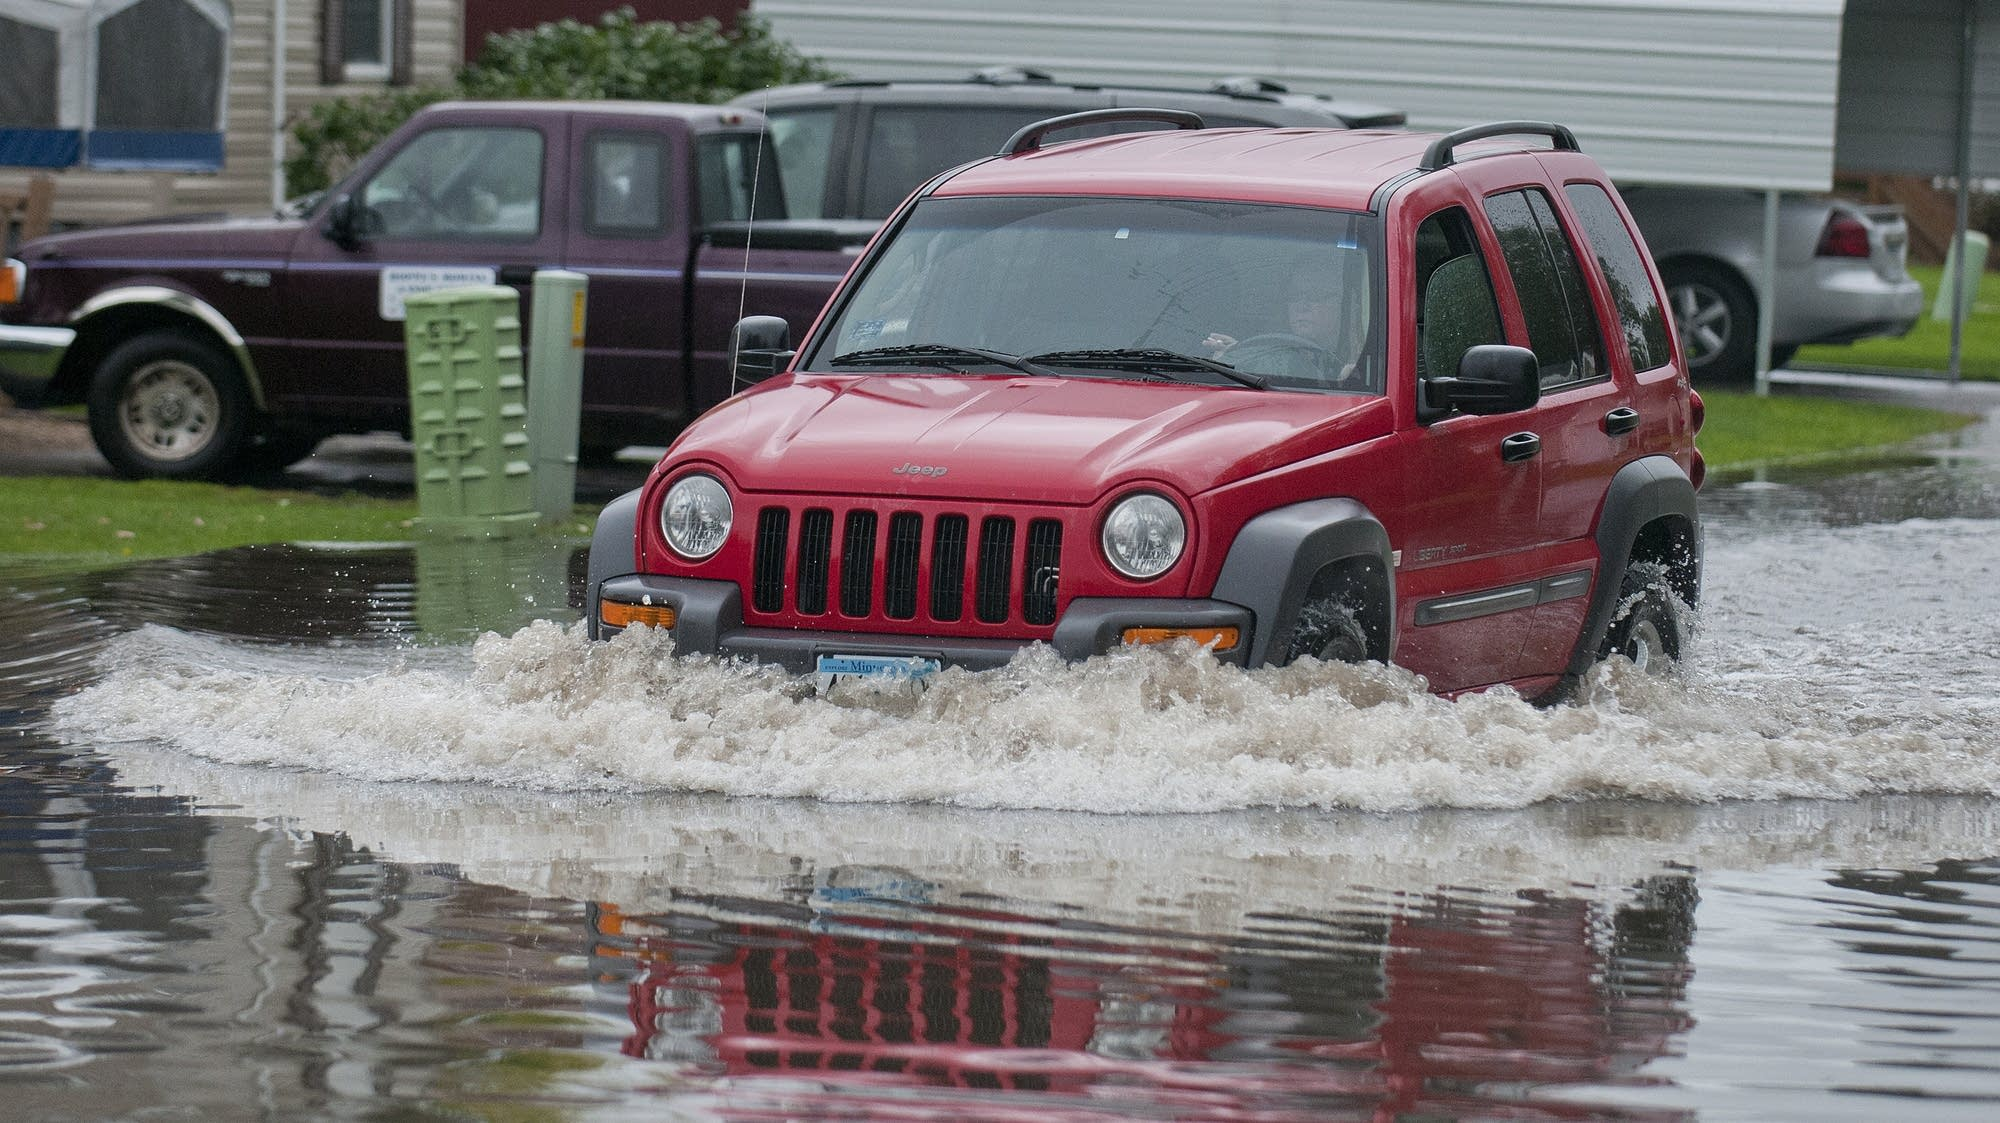 A driver plows through flooded Mankato street.